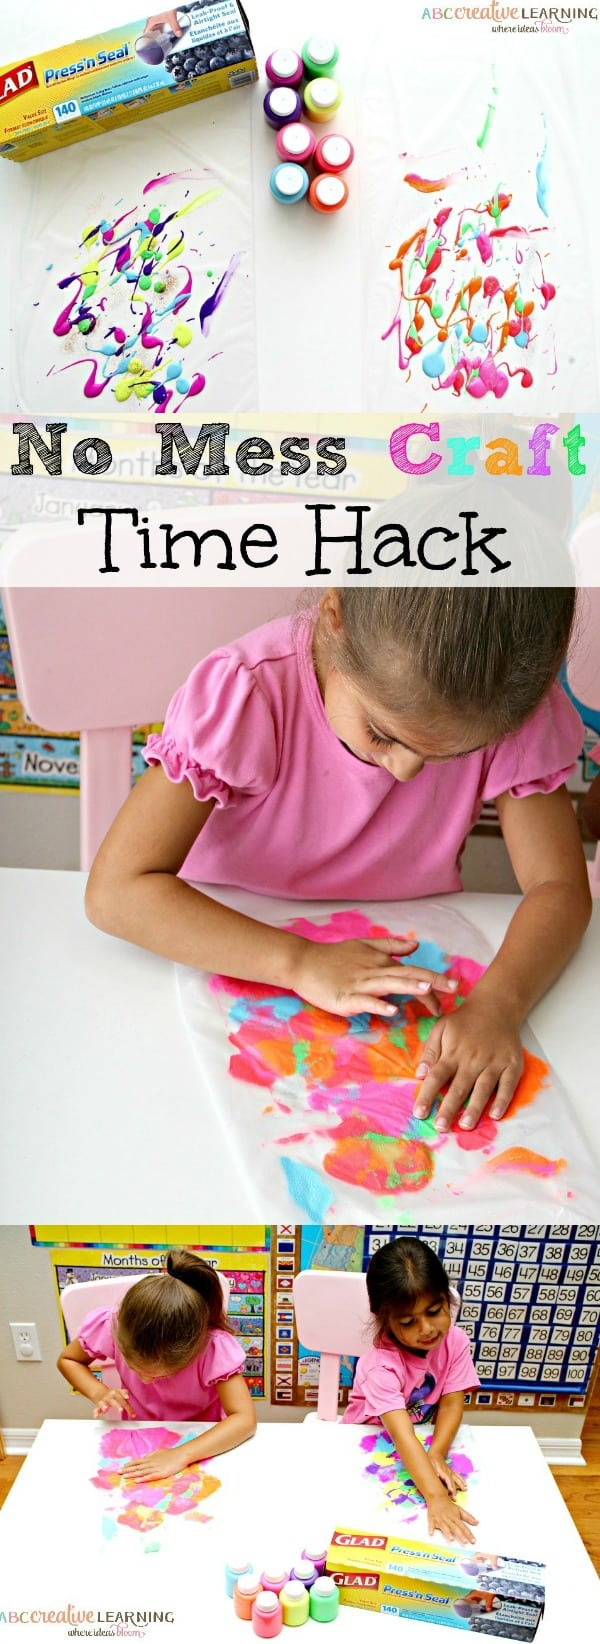 No Mess Craft Time Hacks For Parents. A great way to allow your kiddos to create without the mess! - simplytodaylife.com